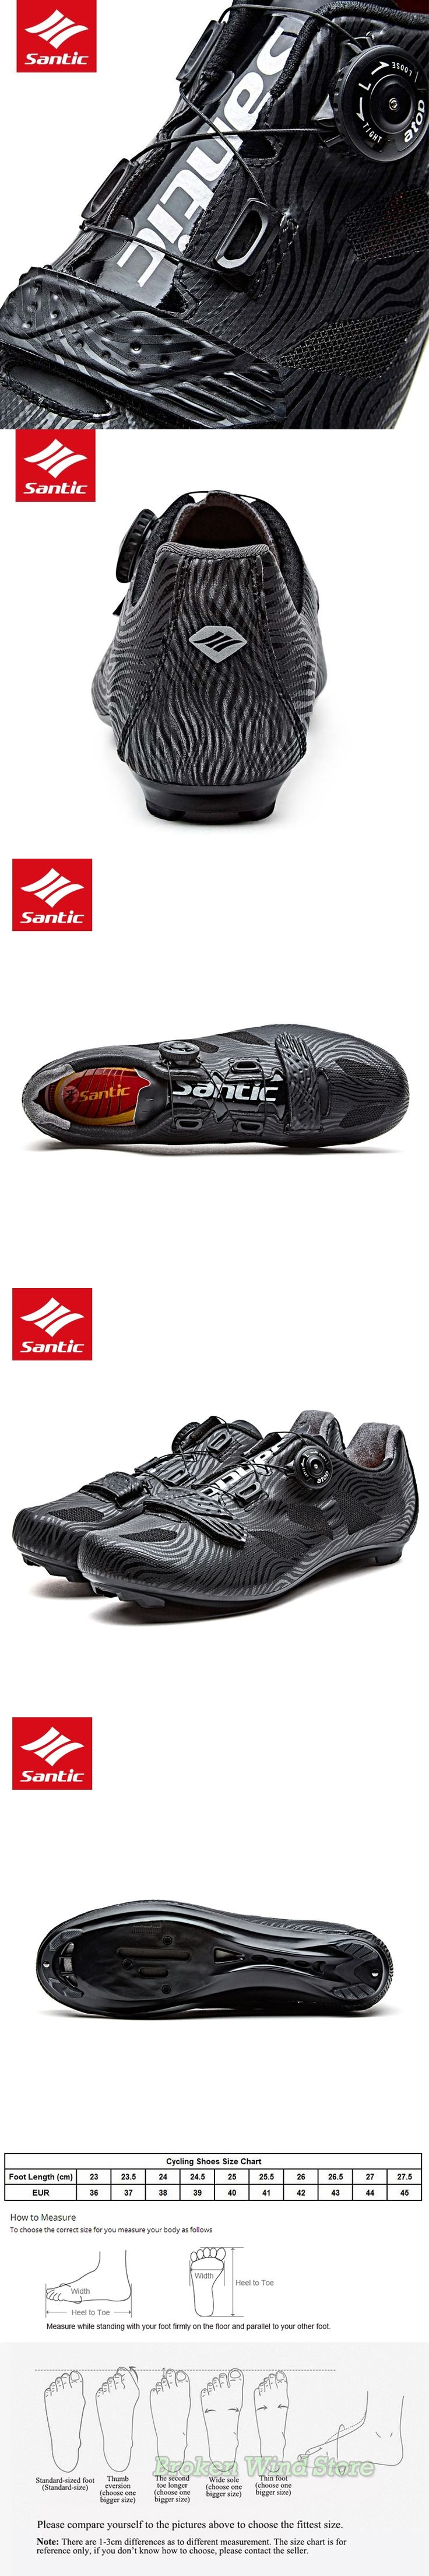 Santic Cycling Shoes PRO Self-Locking Road Bike Shoes Men Sapatilha Ciclismo Estrada Wear-resisting Bicycle Shoes Sneakers 2017